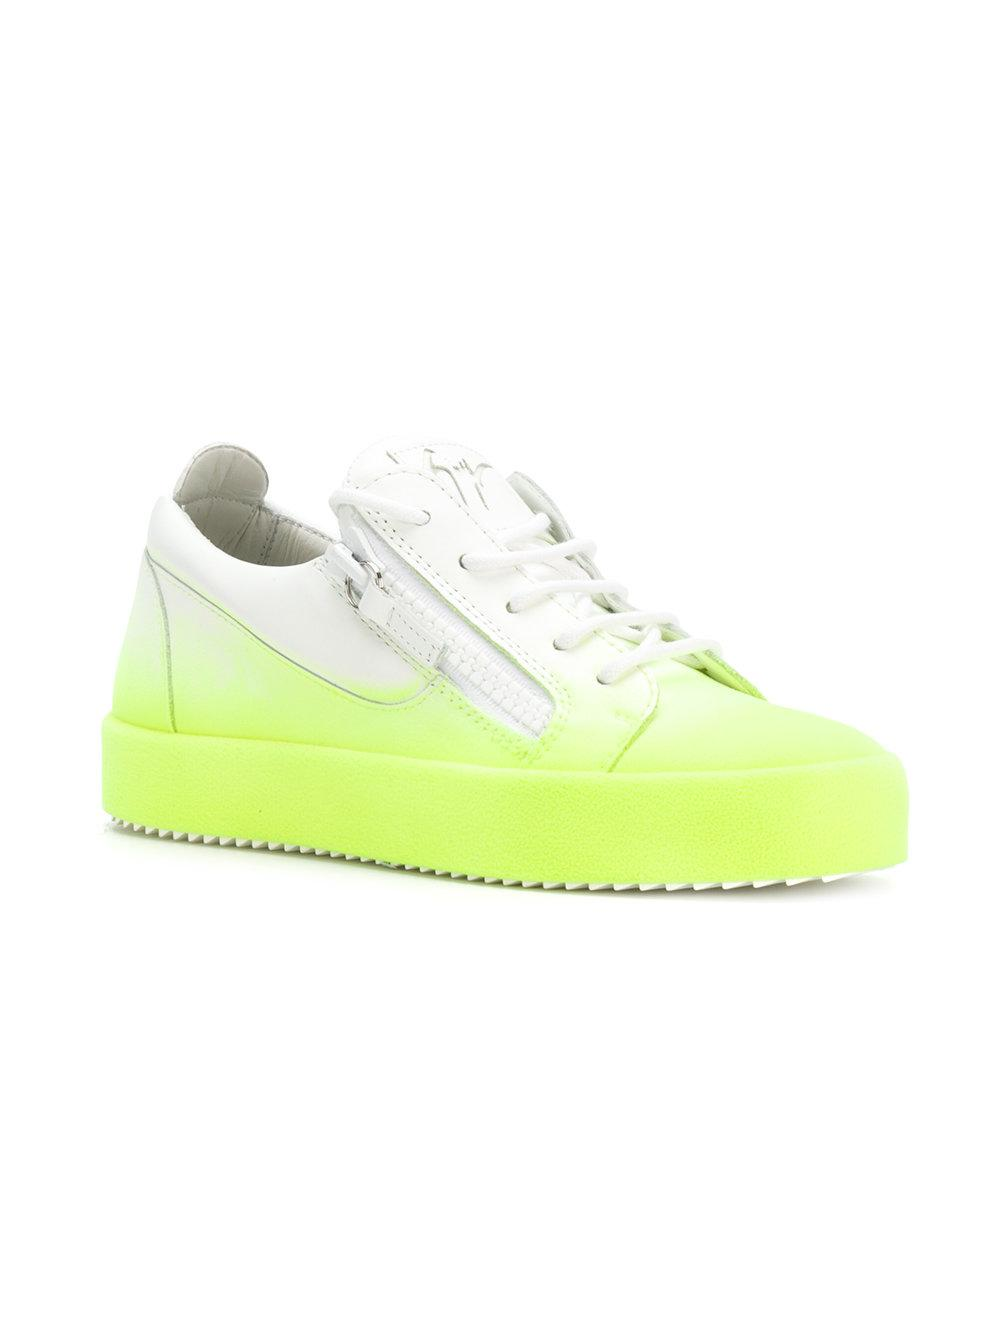 Official Site Sale Online Clearance Purchase May London bicolour sneakers - Yellow & Orange Giuseppe Zanotti Cheap Best Seller Recommend Cheap Purchase For Sale vLgATbk